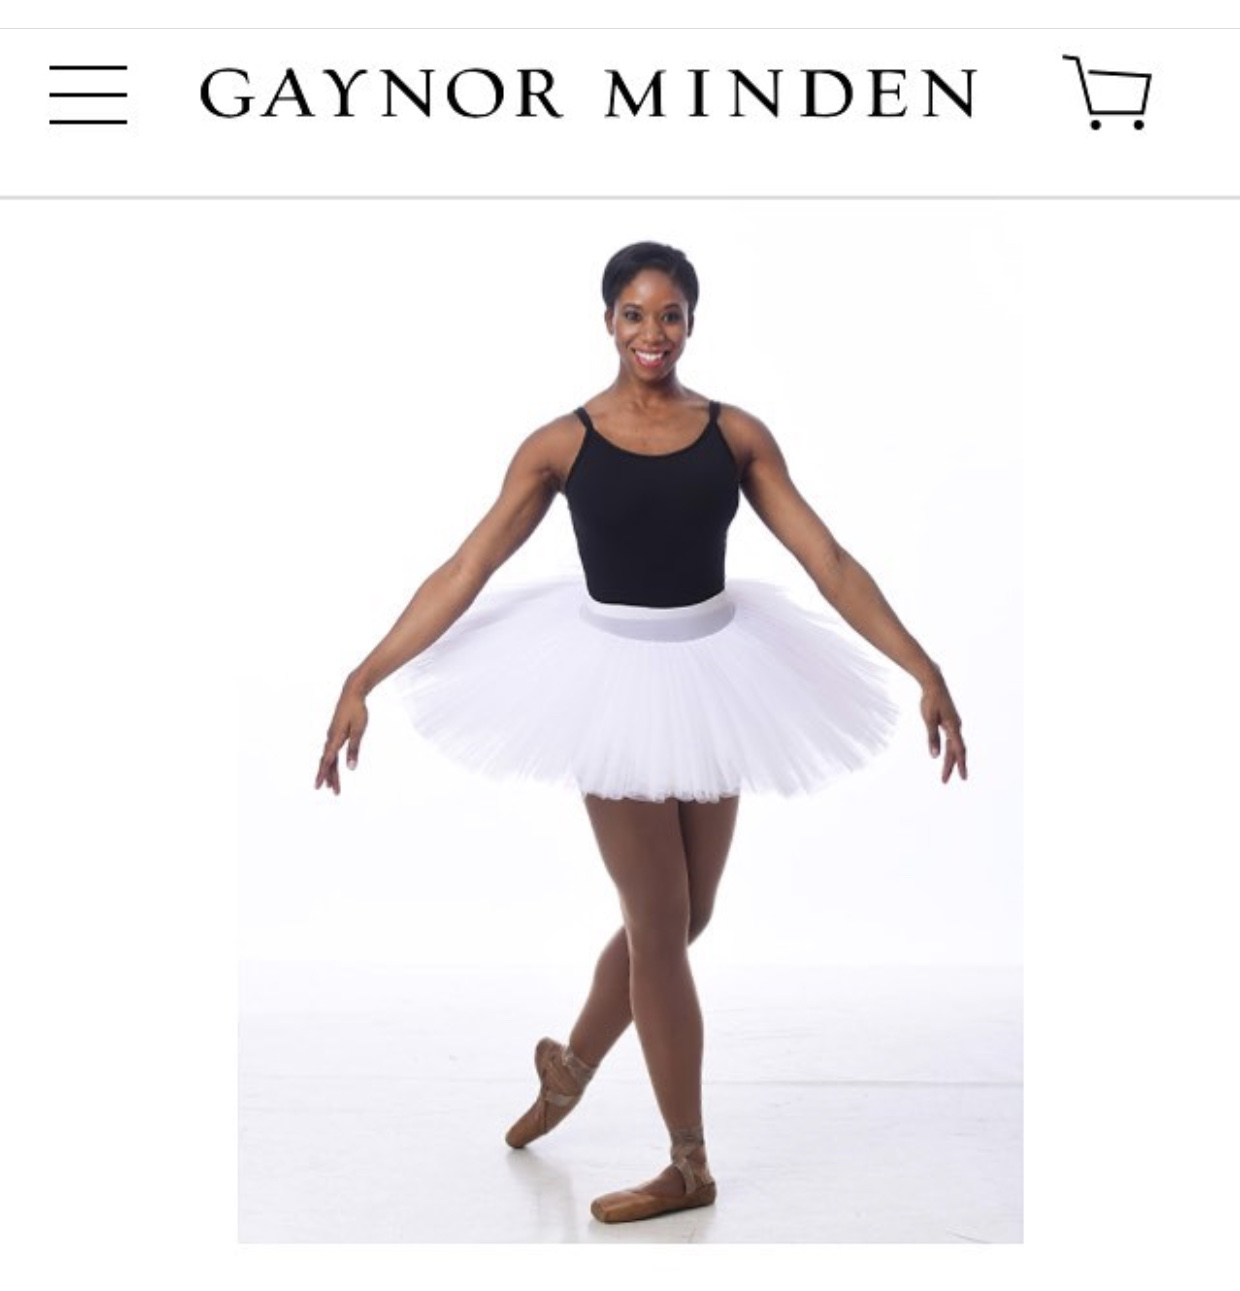 Annellyse models skin tone tights and pointe shoes for Gaynor Minden.